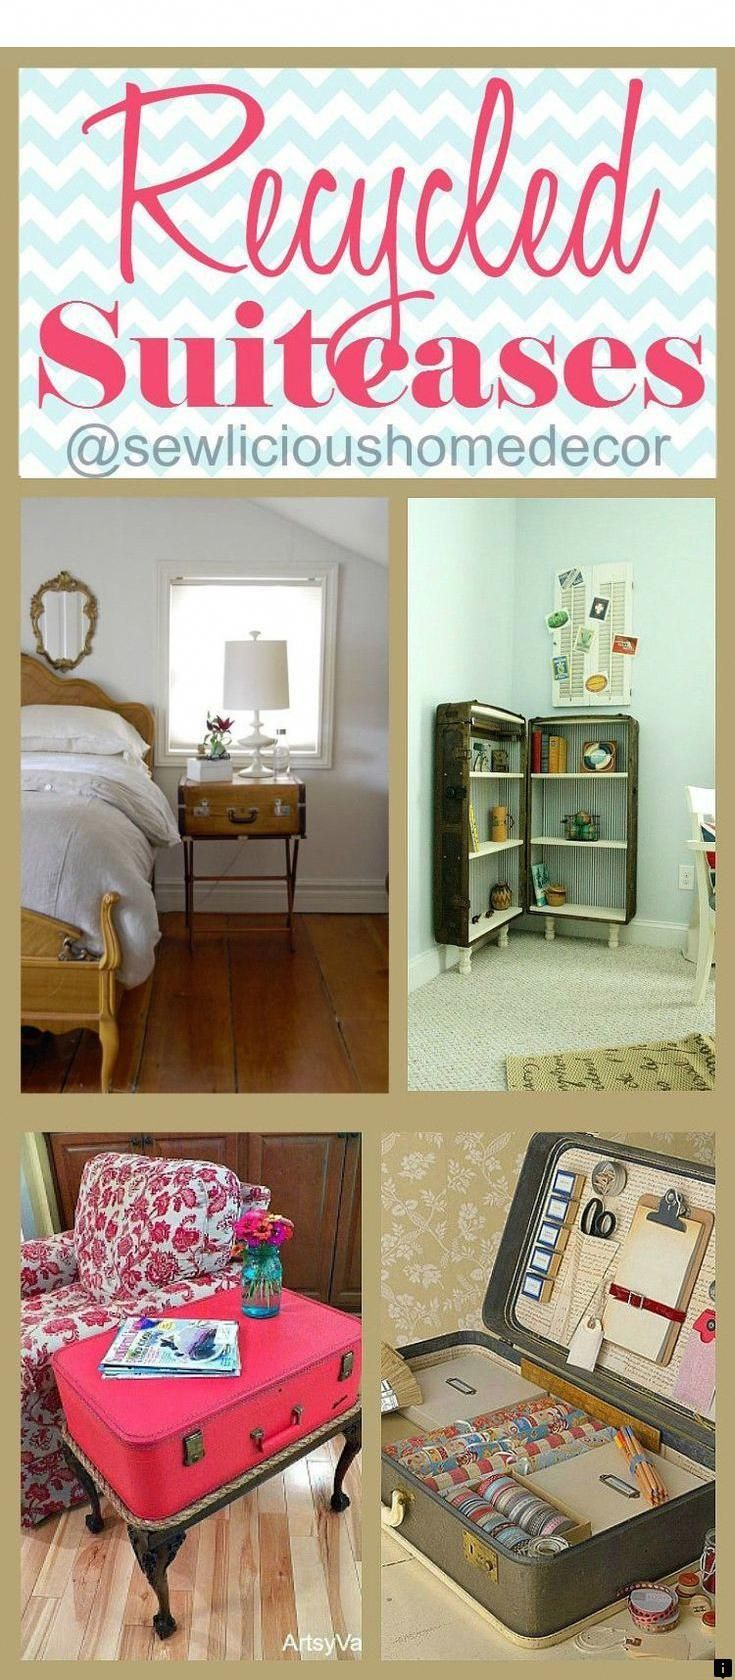 Read more about storage ideas for small spaces click the link for